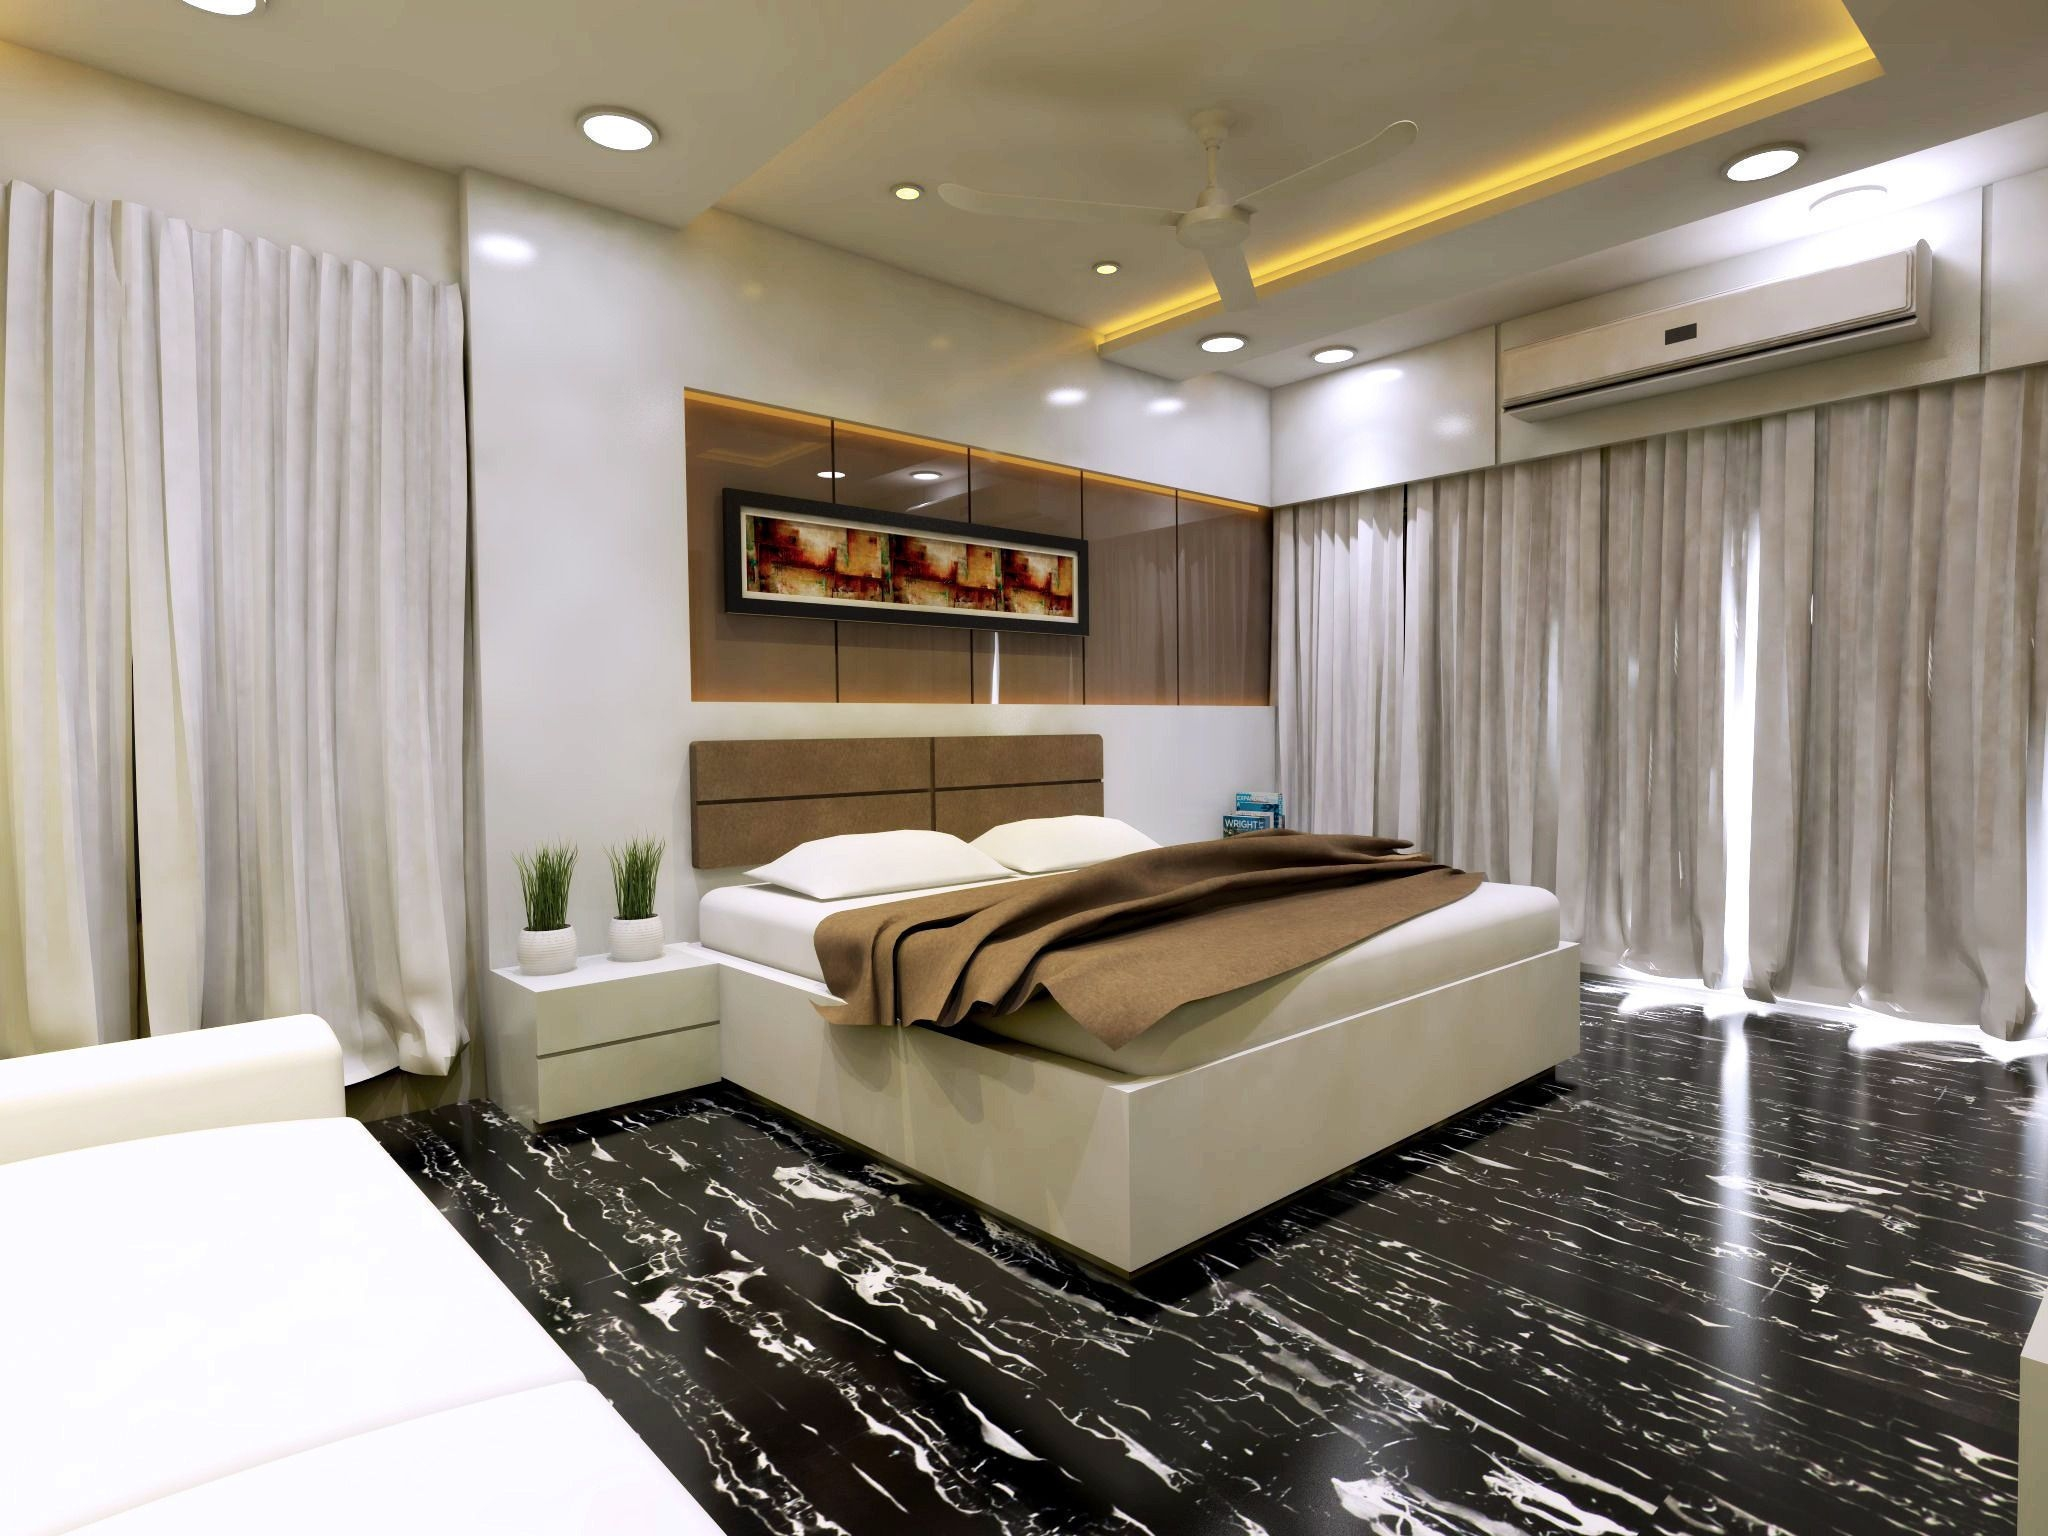 Modern Bedroom Interior Vray Rendered 3D Model  Cgtrader